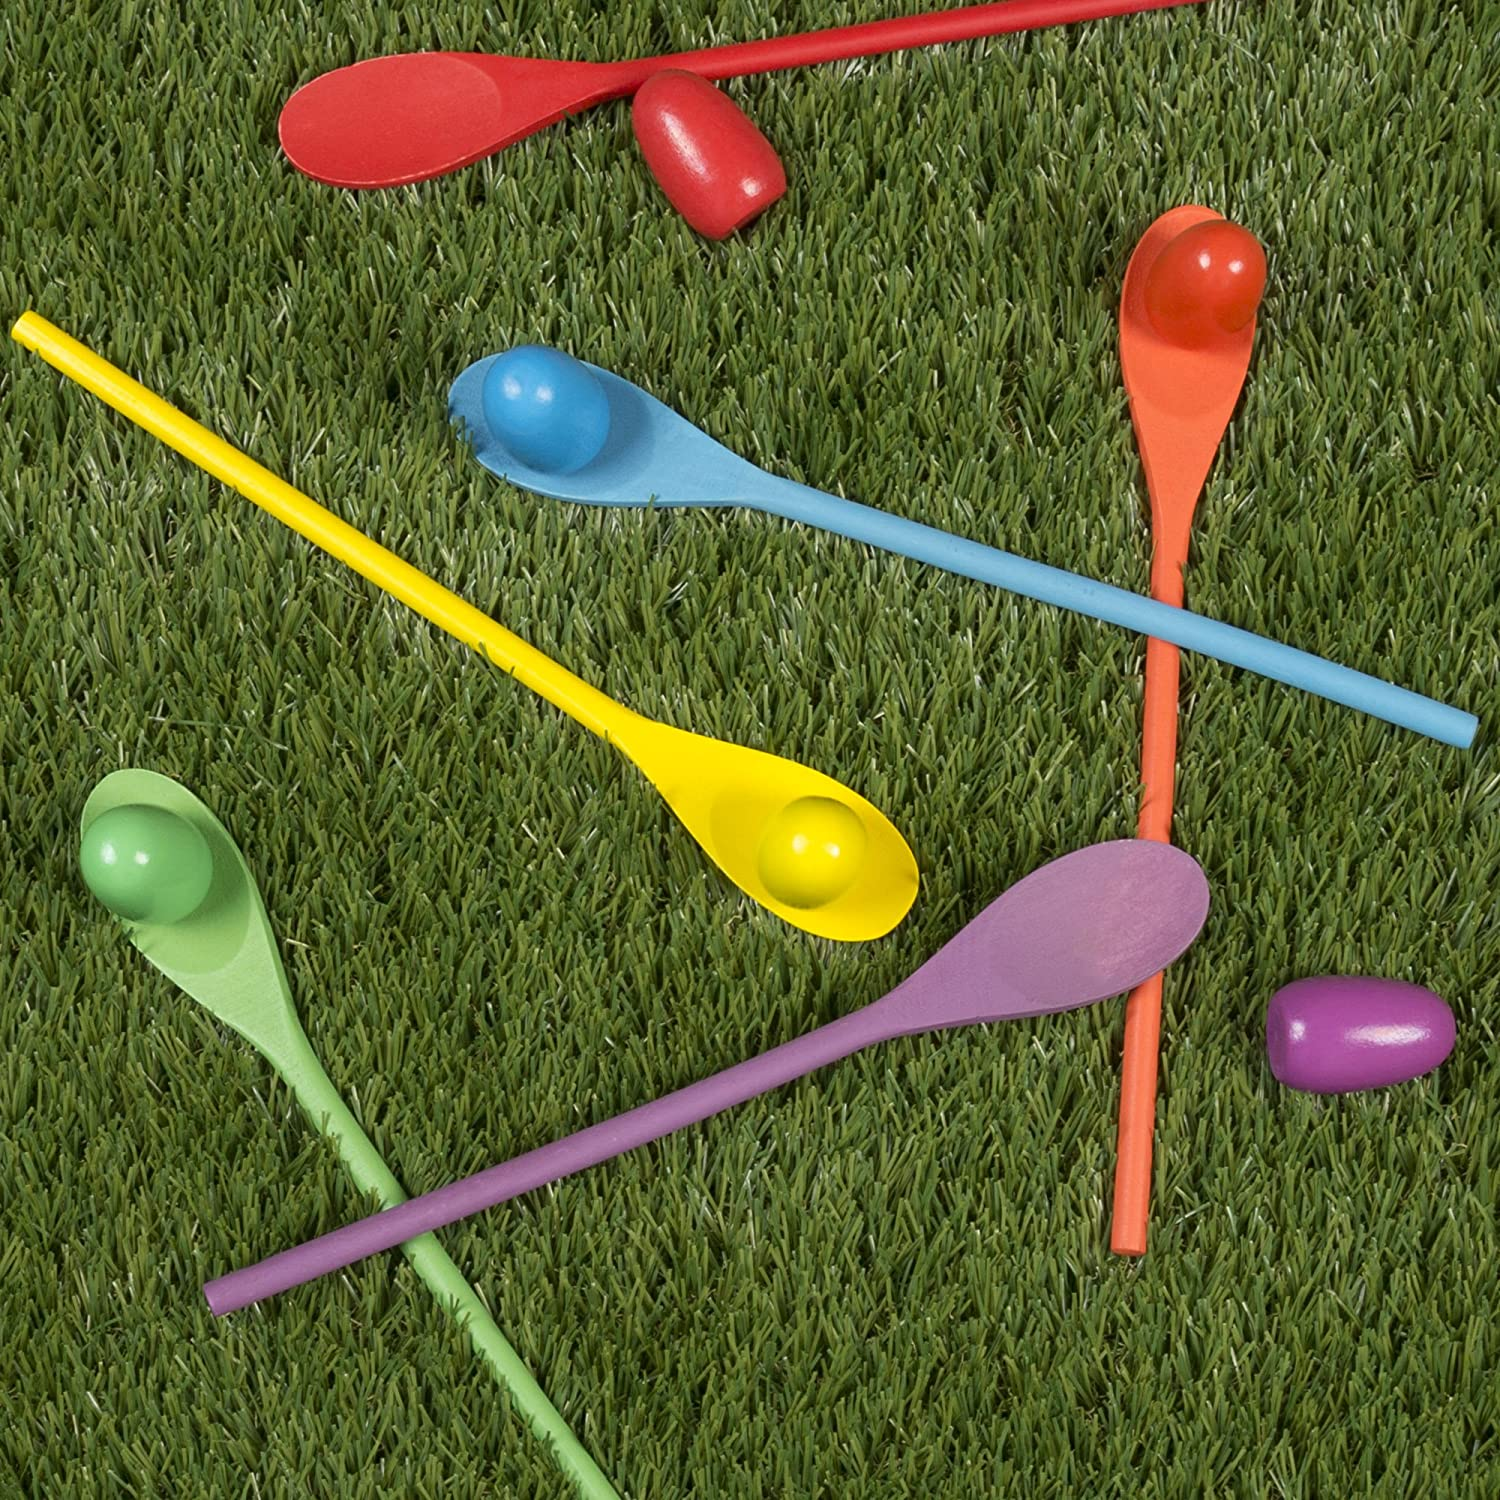 Indoor or Outdoor Balance Game for Adults and Kids by Hey Play! Wooden Egg and Spoon Race Game with 6 Spoons /& Eggs